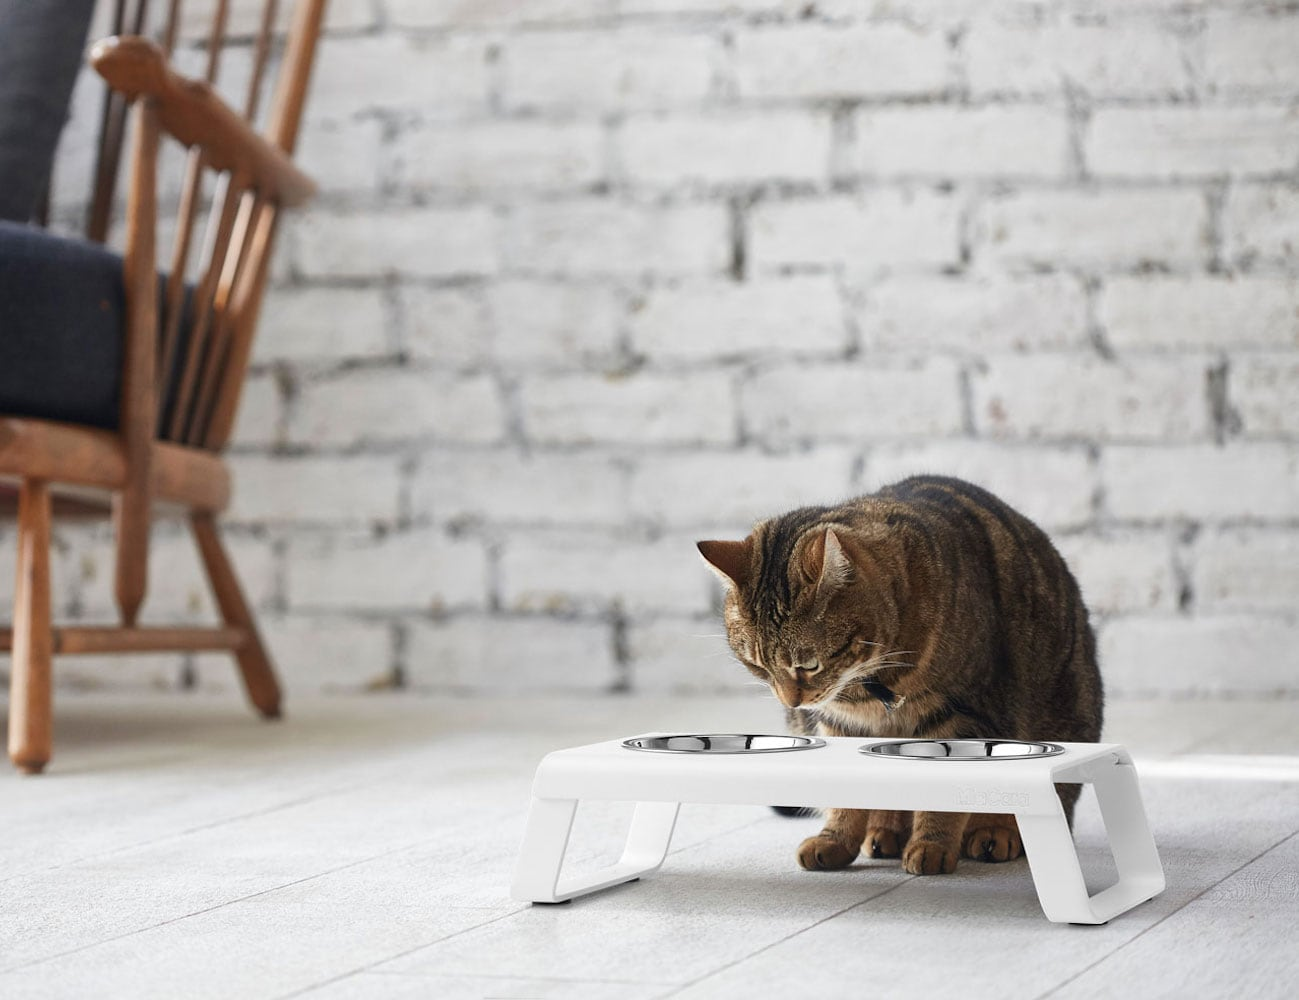 Desco Aluminum Cat Feeder by MiaCara lets your feline eat in style